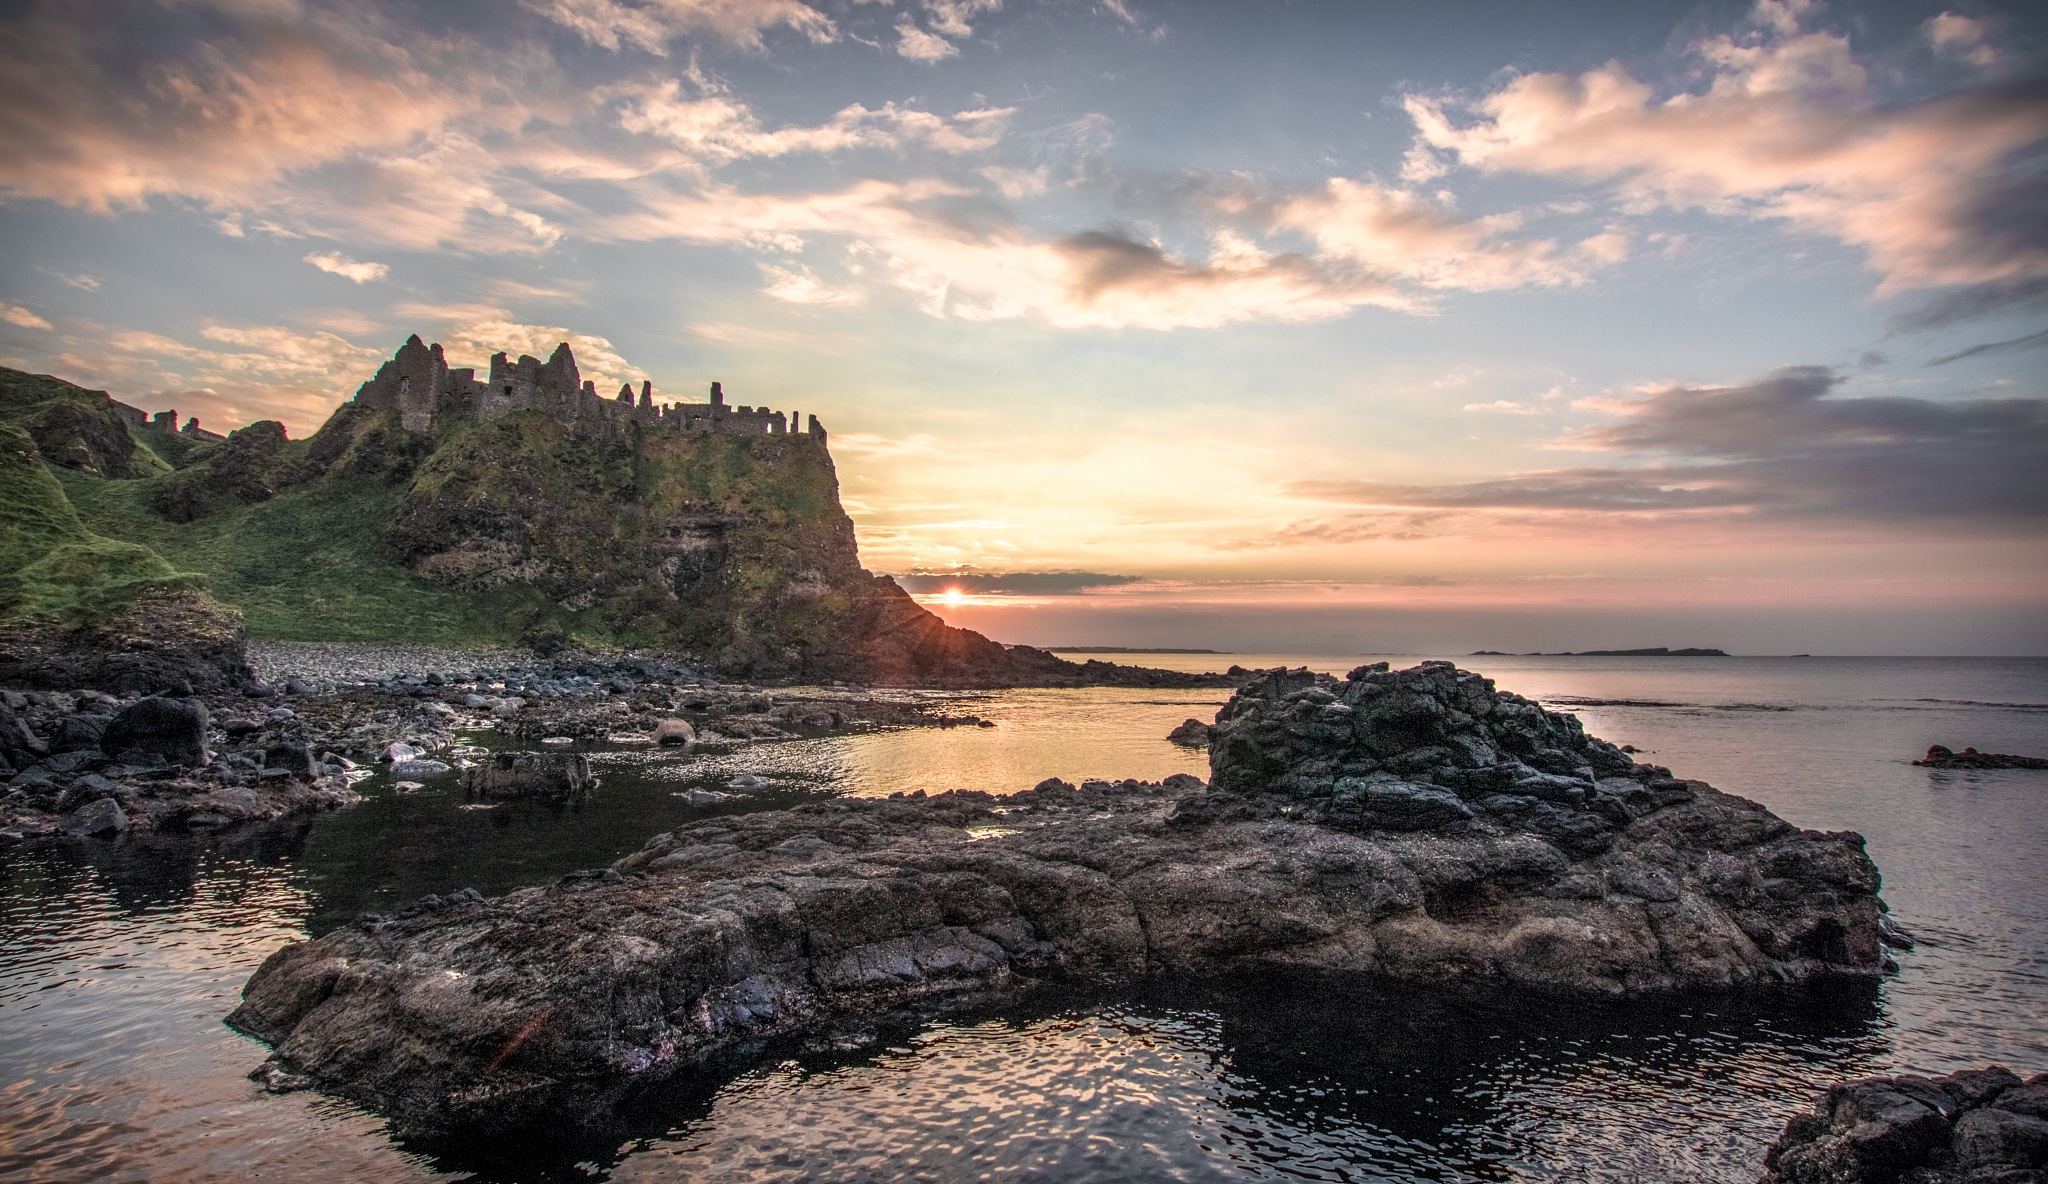 Dunluce Castle at sunset by Eddie Spence